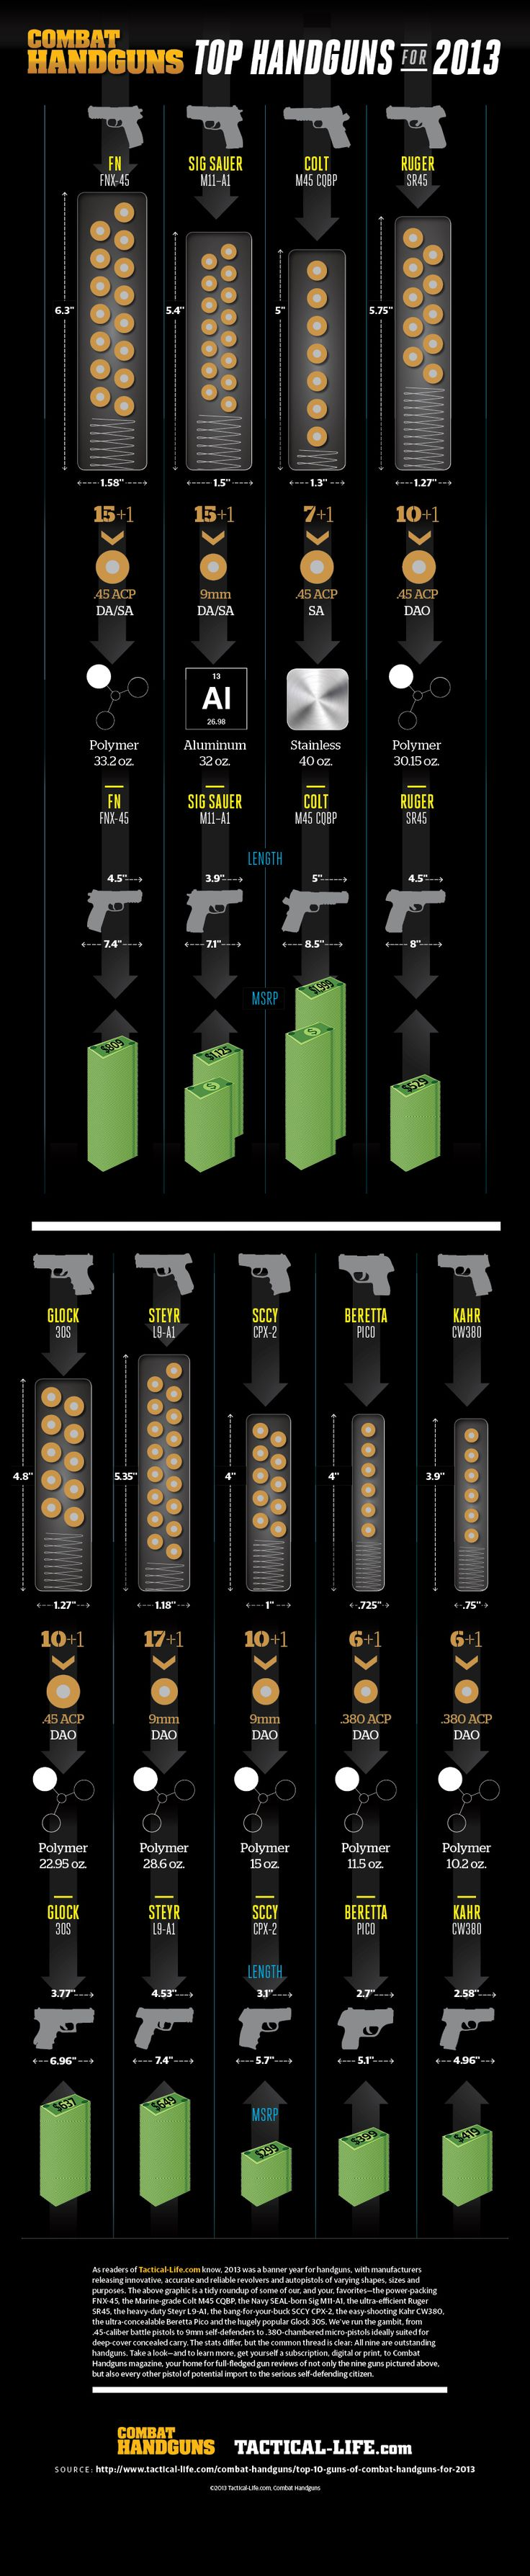 Combat Handguns Top Handguns of 2013 Infographic -Combat Handguns puts the Top Handguns of 2013 together in an infographic! PRESENTED BY By ...